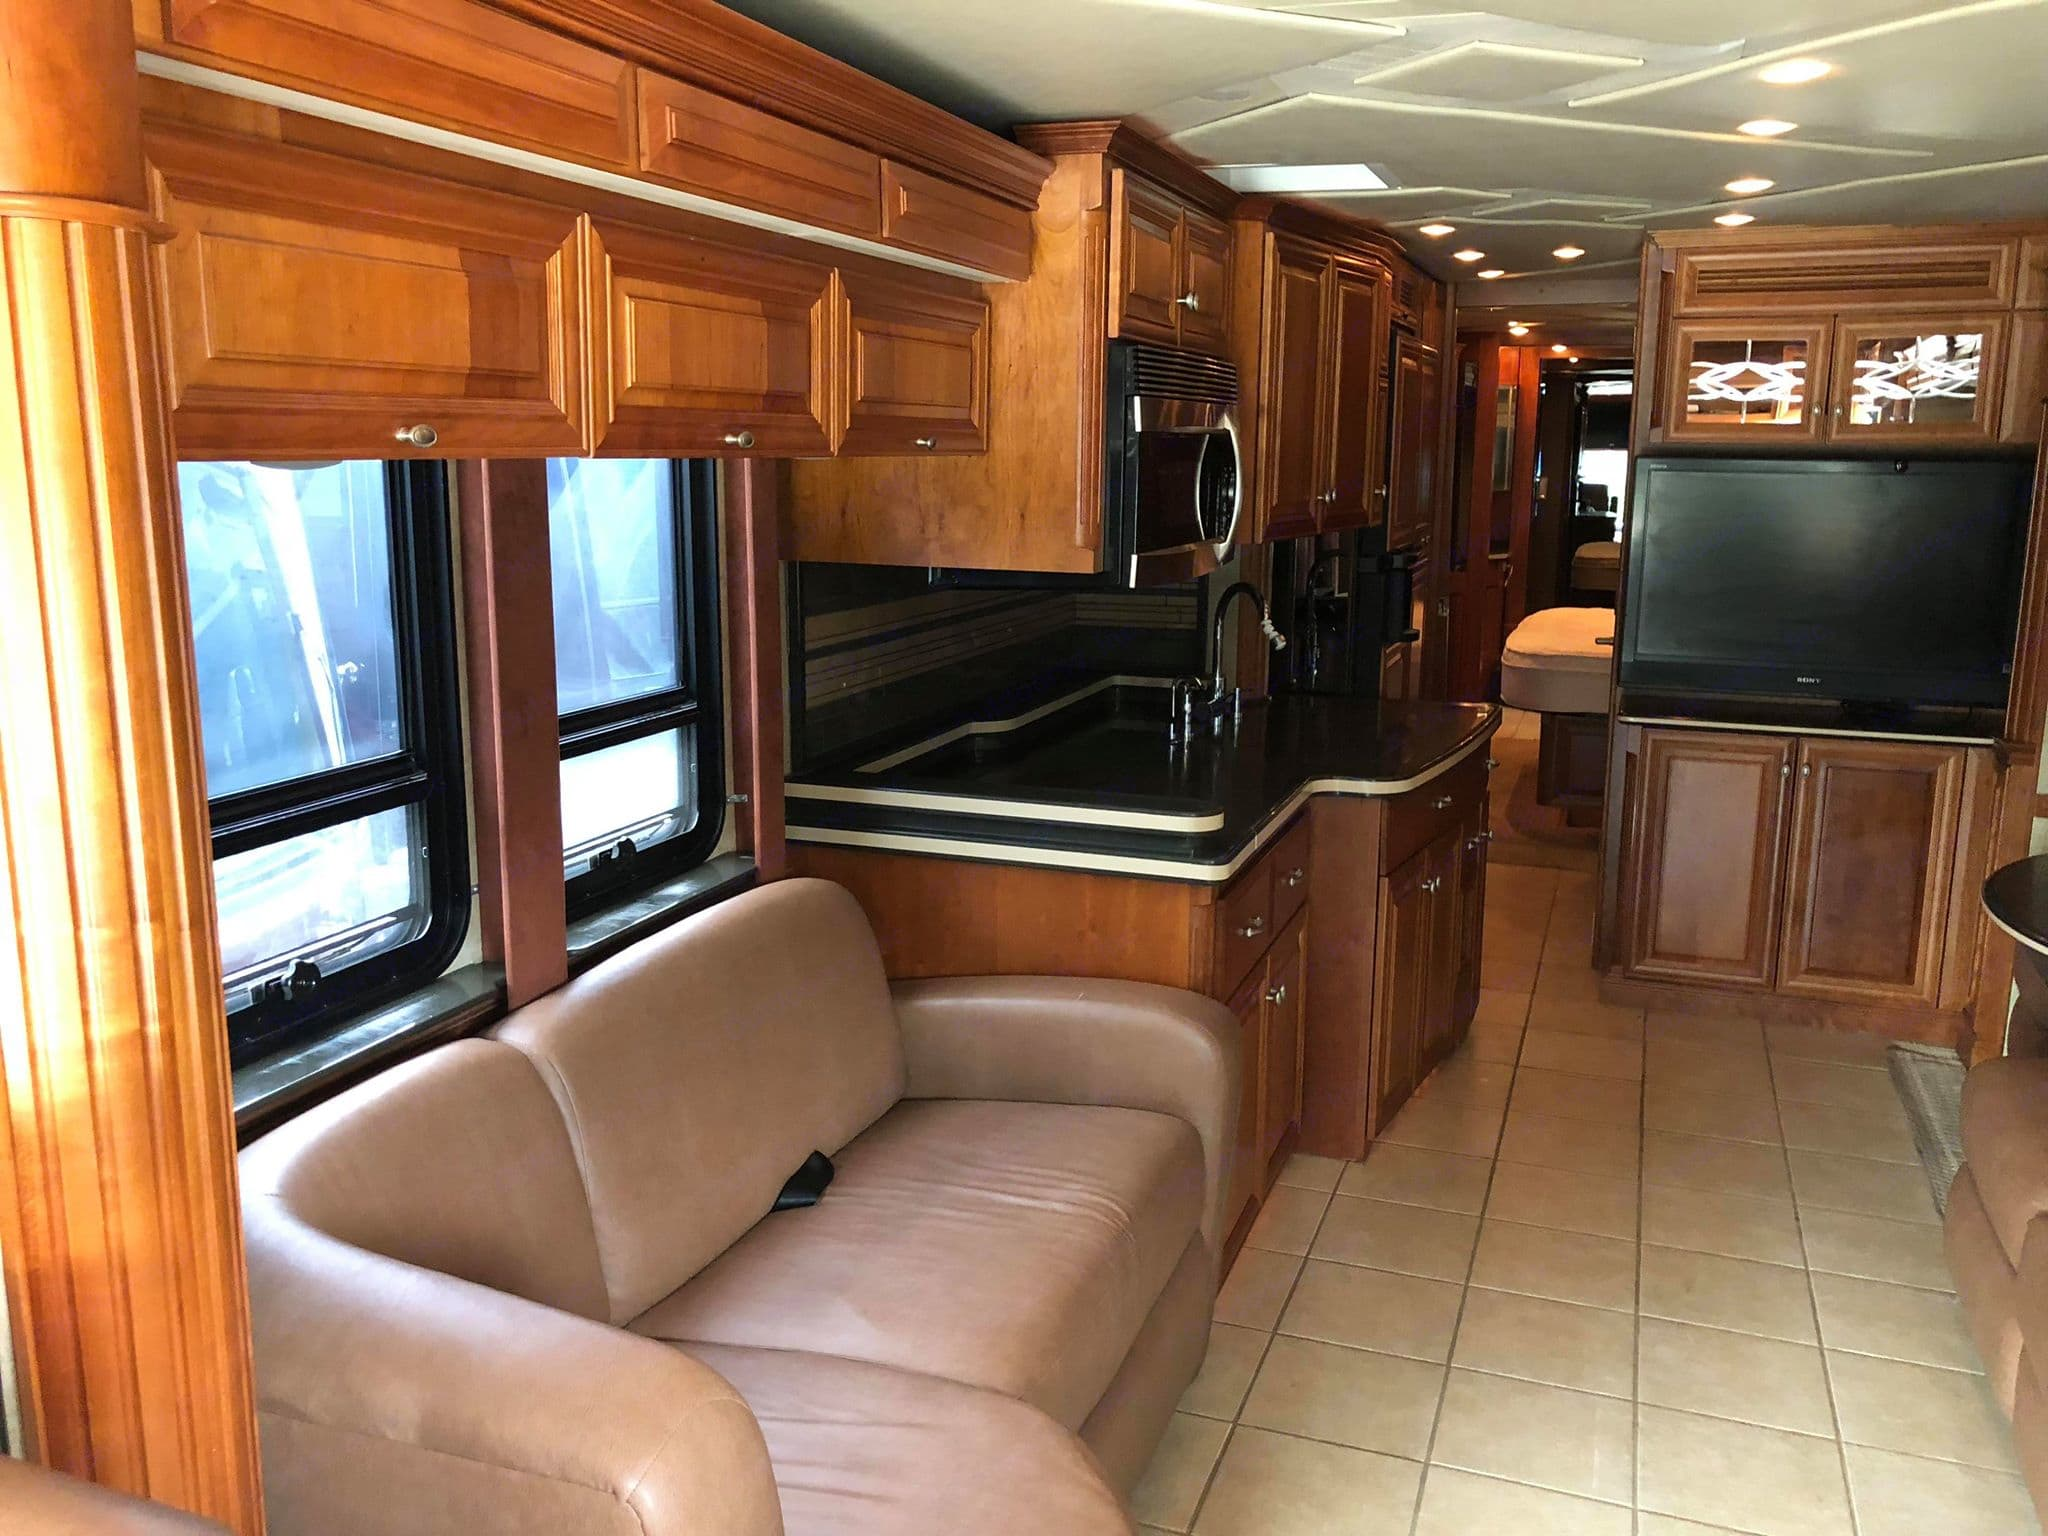 Spacious interior, plenty of room to relax and unwind.. Newmar King Aire - 4561 - bath + 1/2 bath 2008